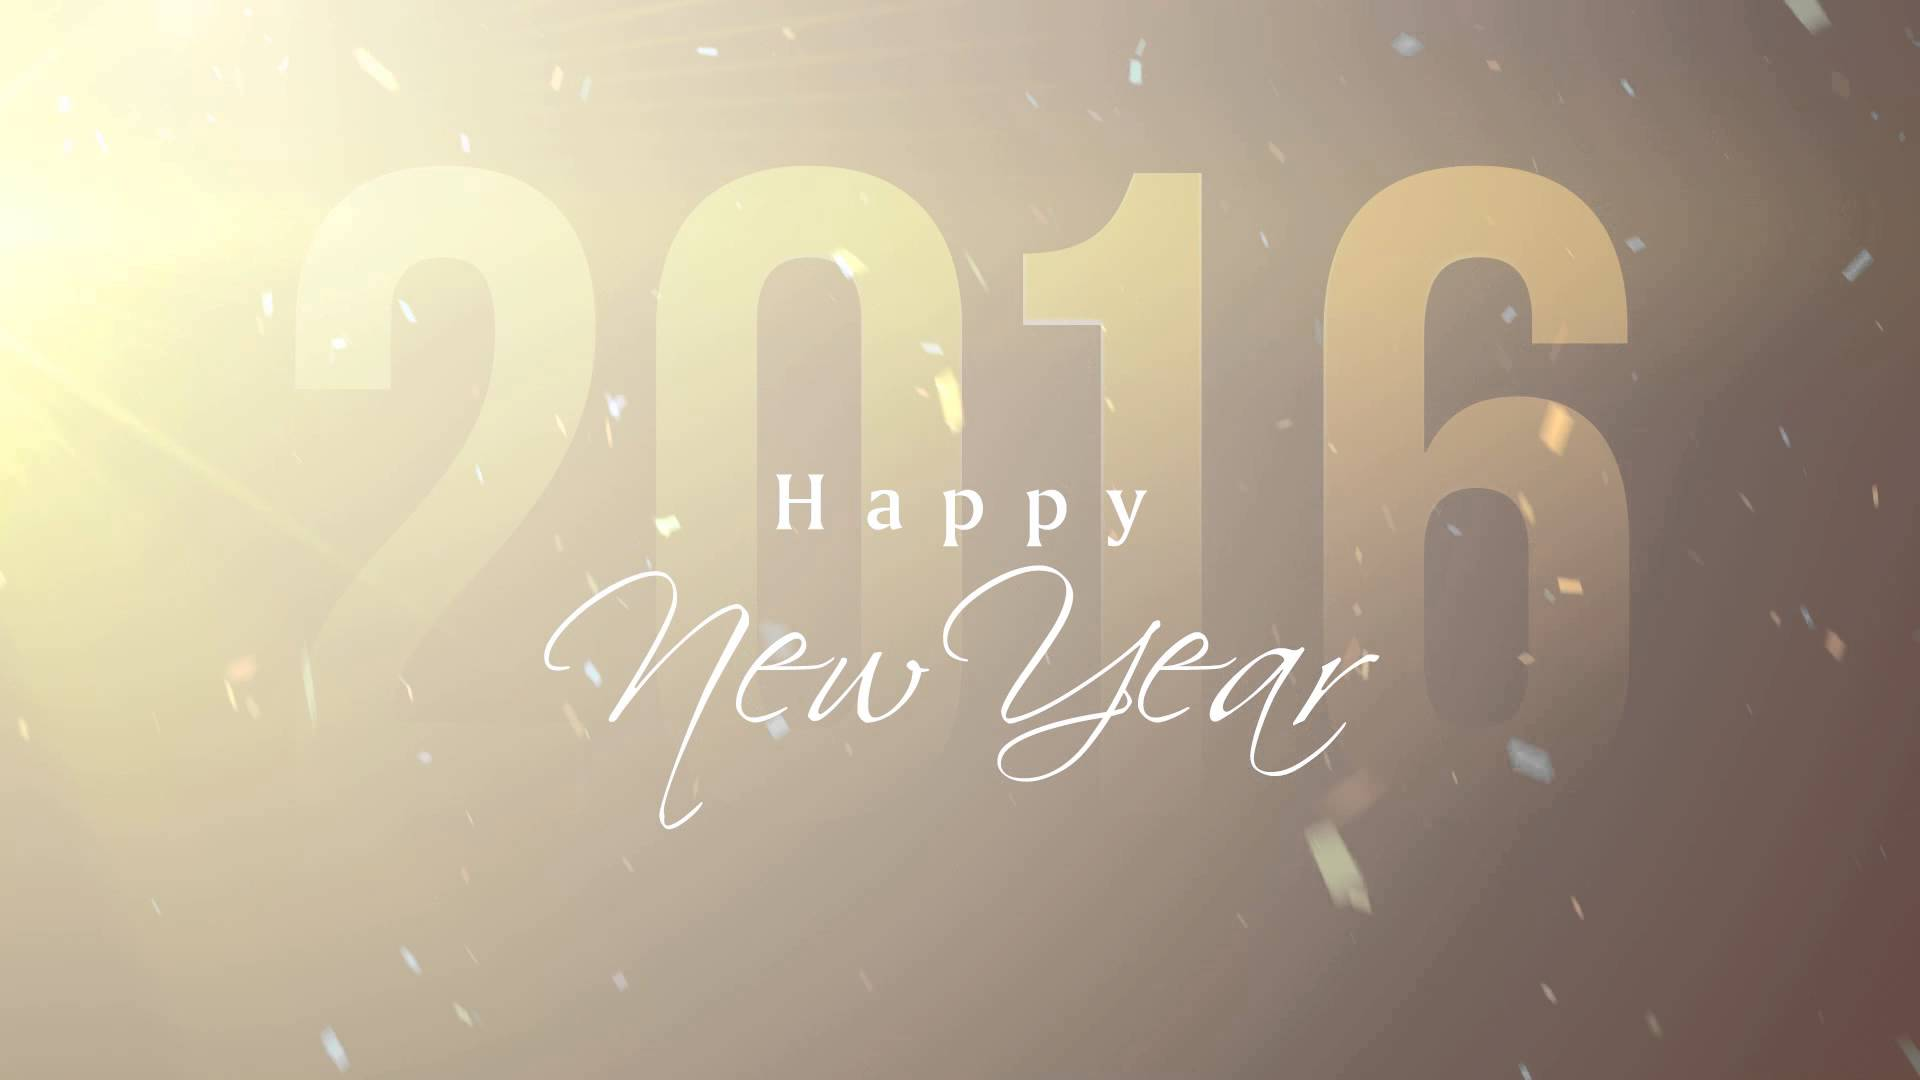 Free clipart facebook friends happy new year - ClipartFest vector royalty free